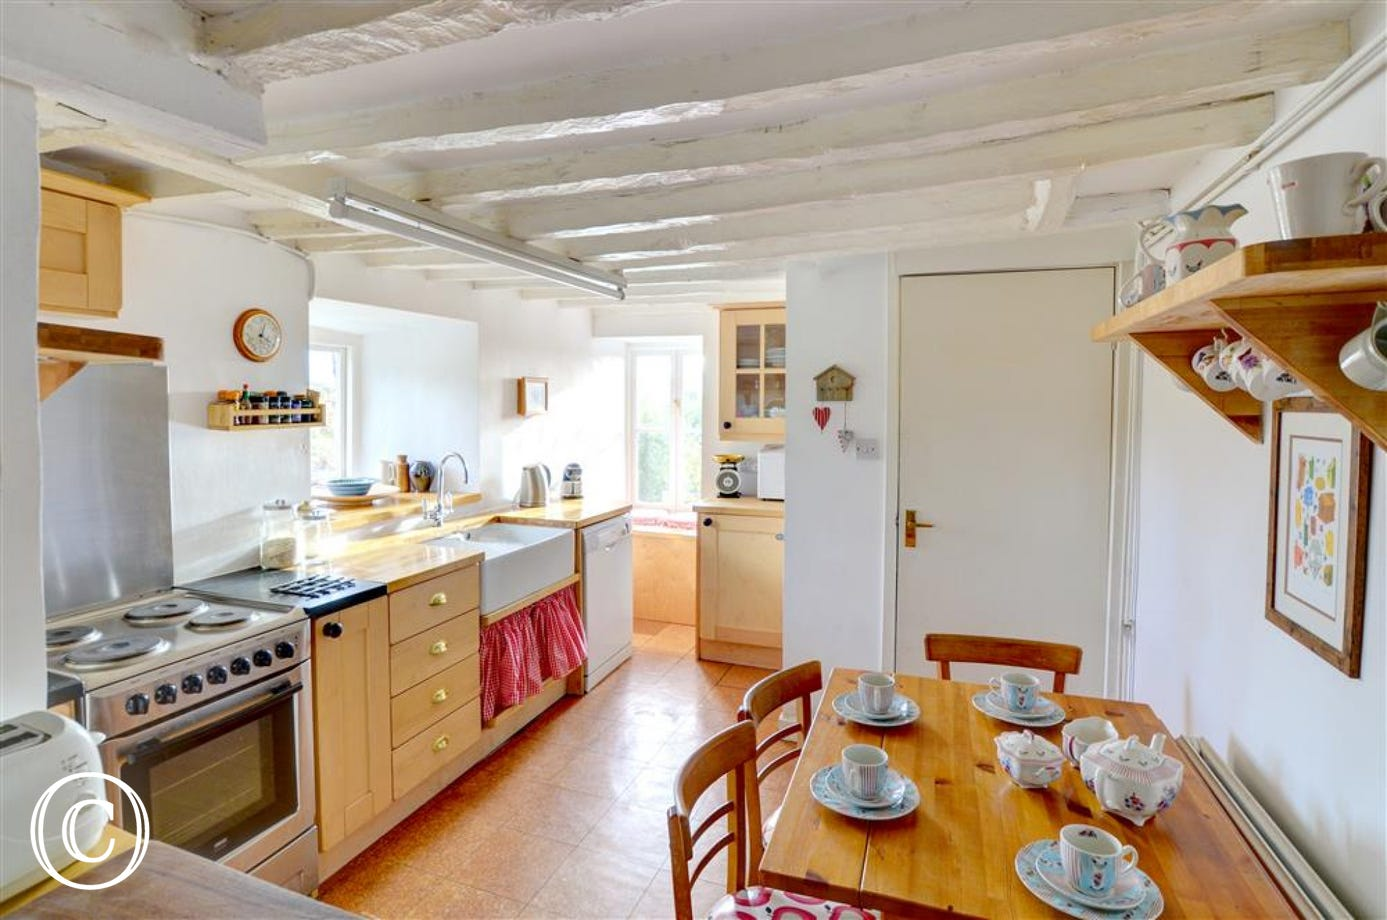 The bright kitchen has a Belfast sink and other traditional features, and includes a breakfast table and chairs for informal meals